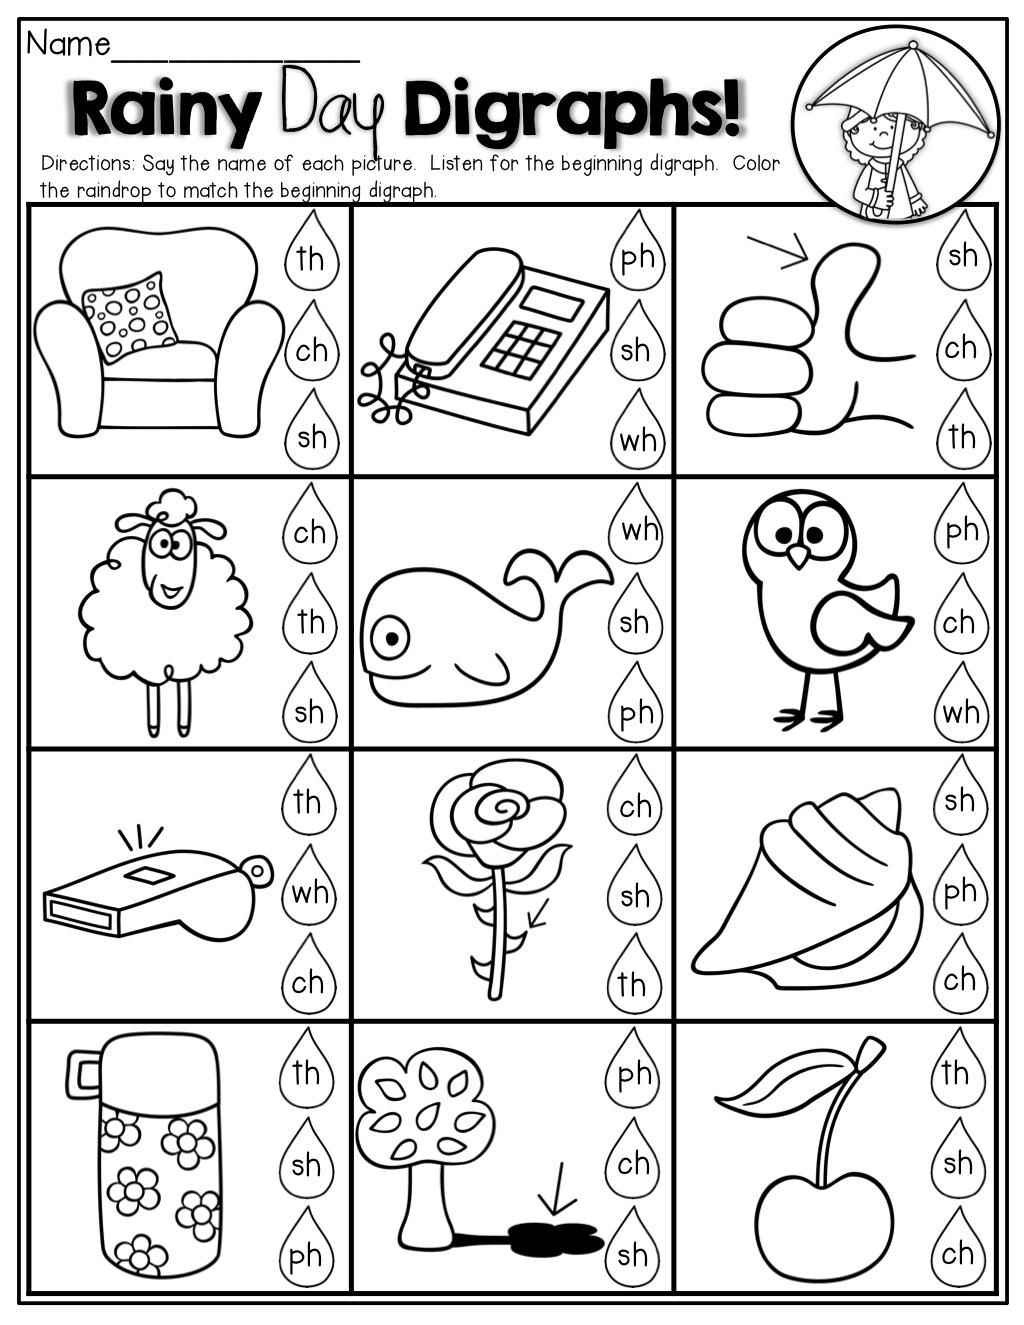 Free Printable Digraph Worksheets For Kindergarten In